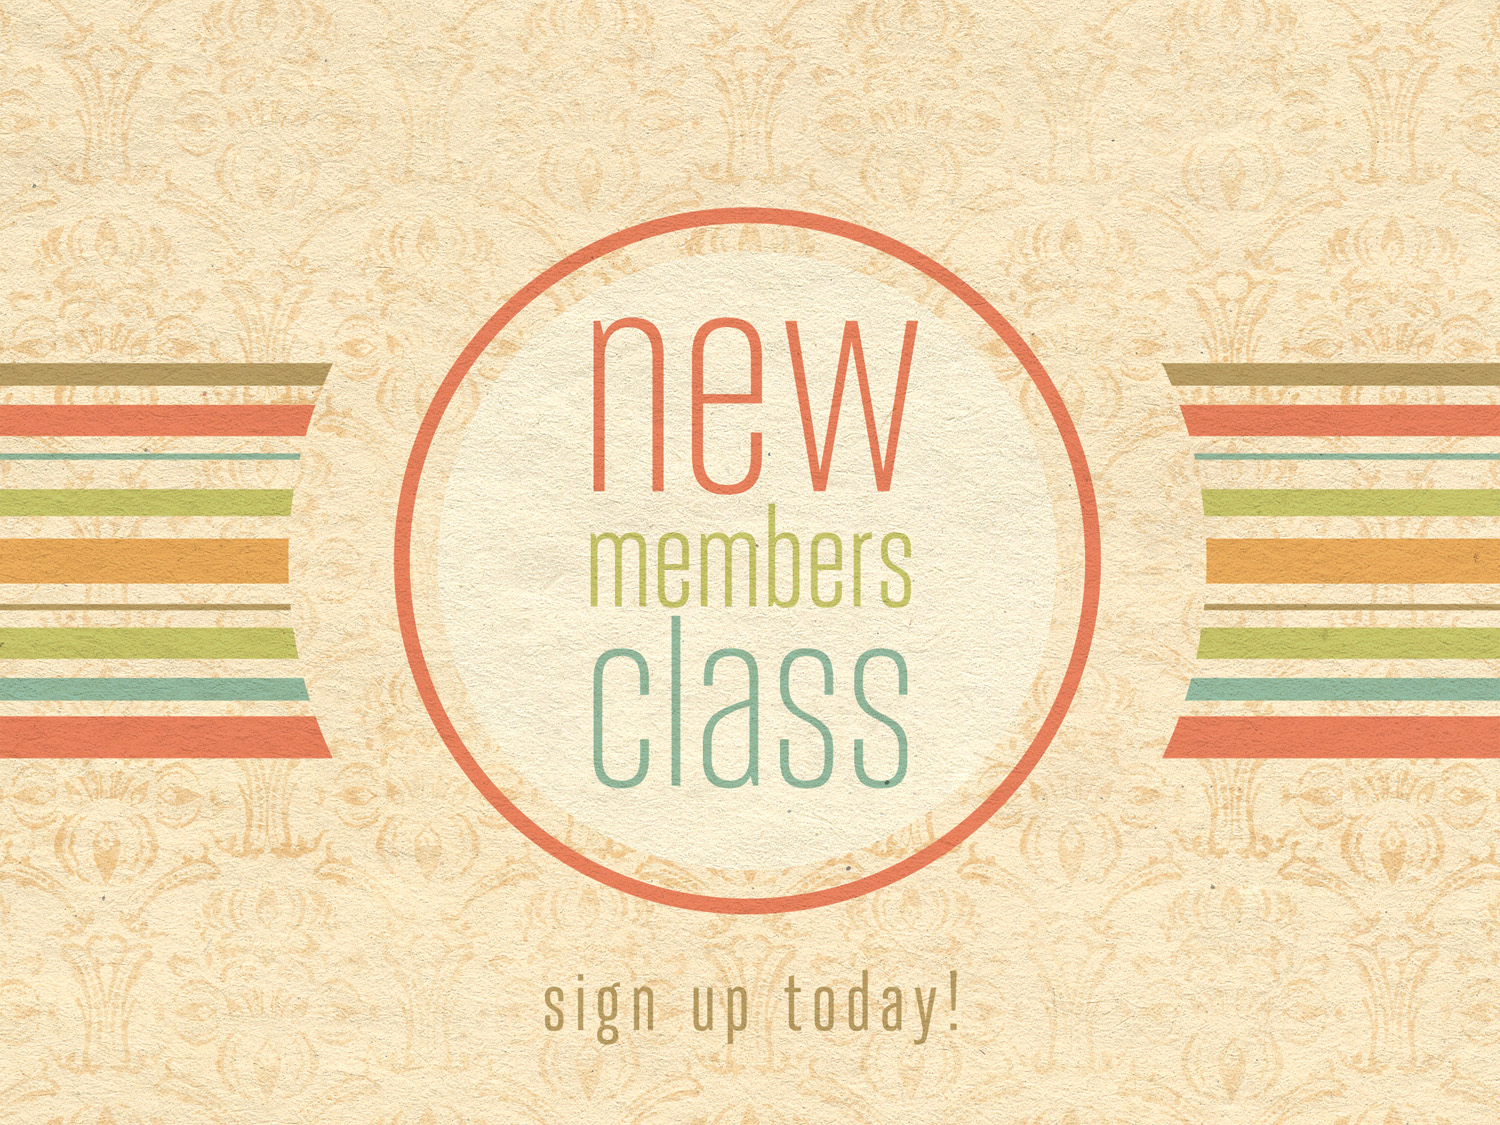 New Member: Cross Foundational Classes 1&2 - The Cross Church |Membership Class